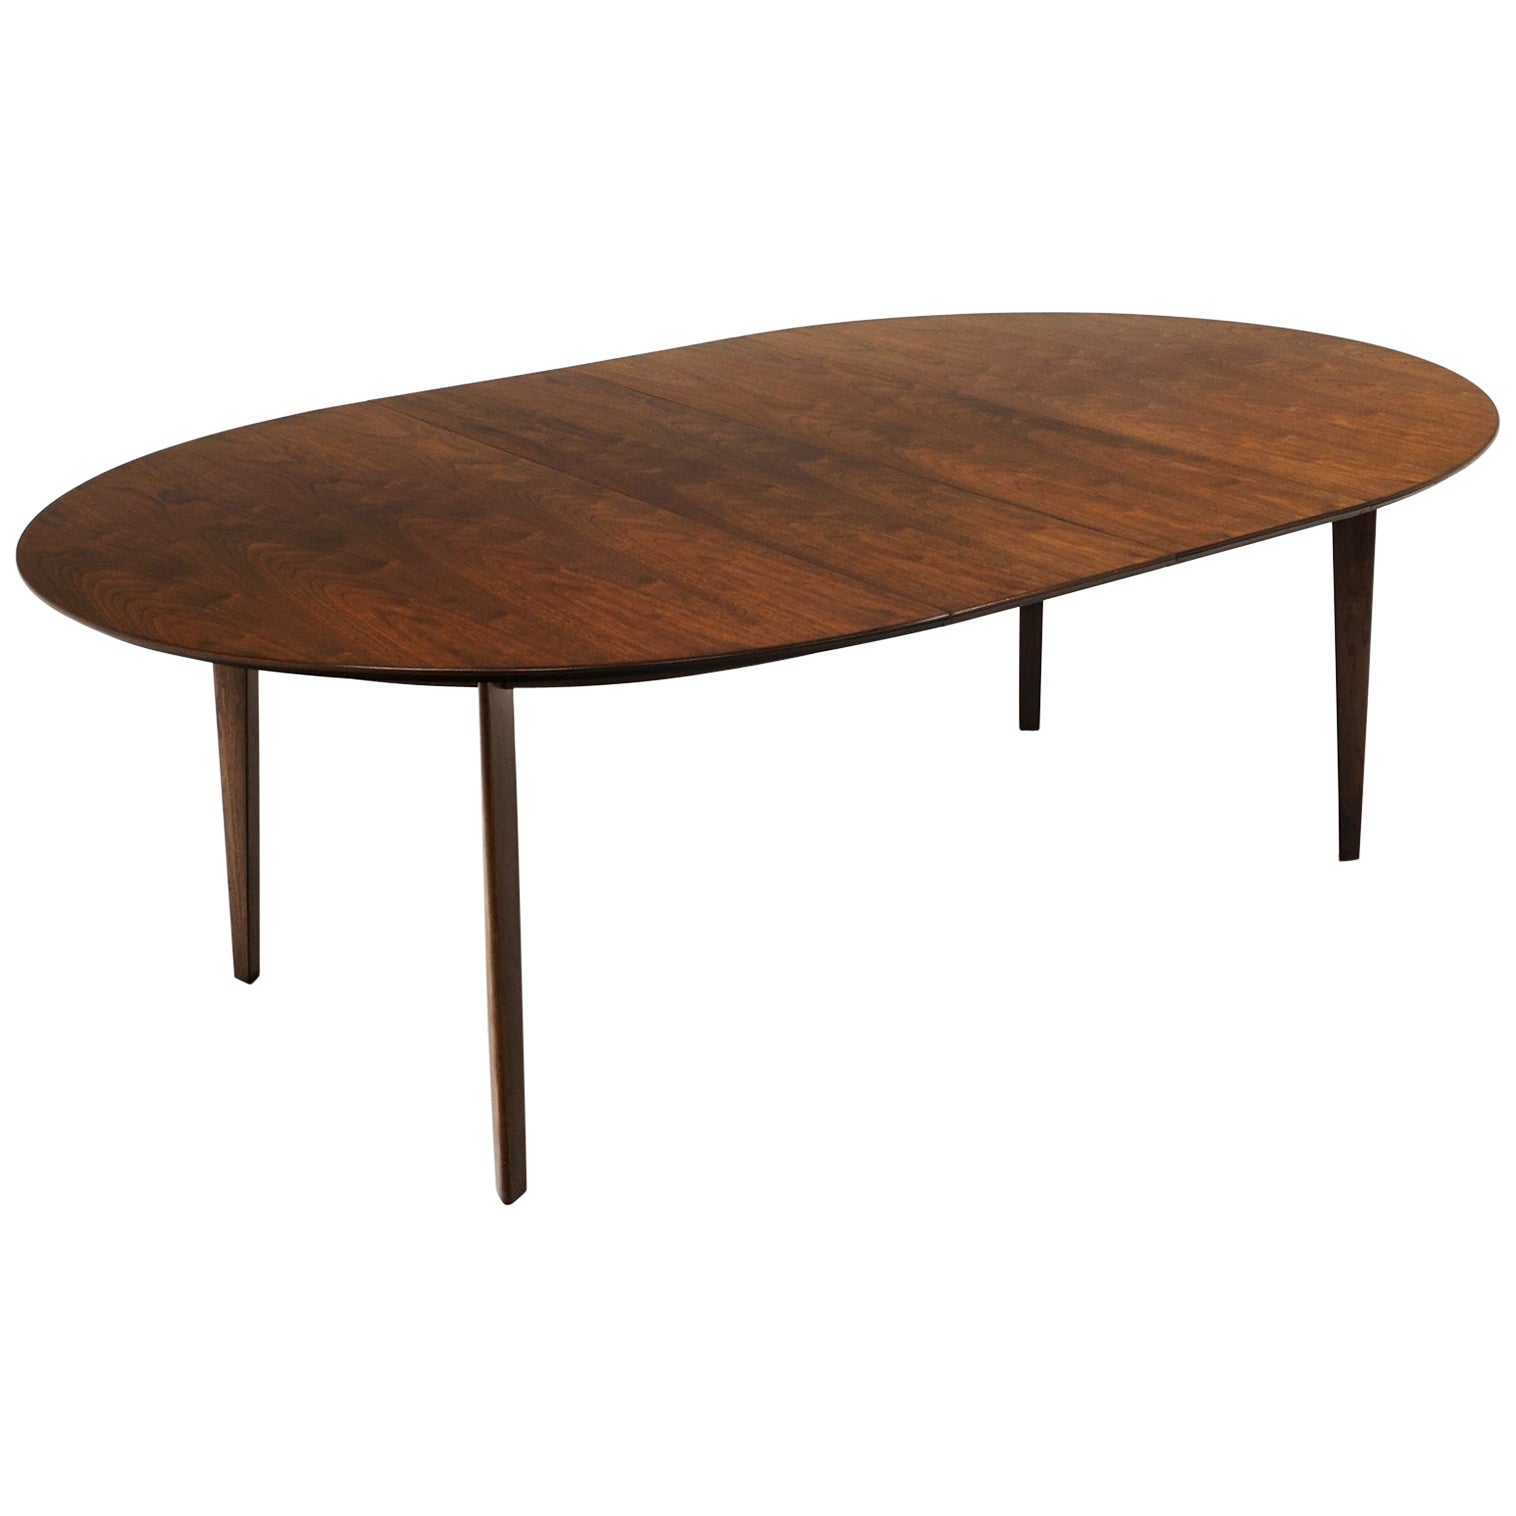 Expandable Dining Table by Edward Wormley for Dunbar, Almost Round to Oval